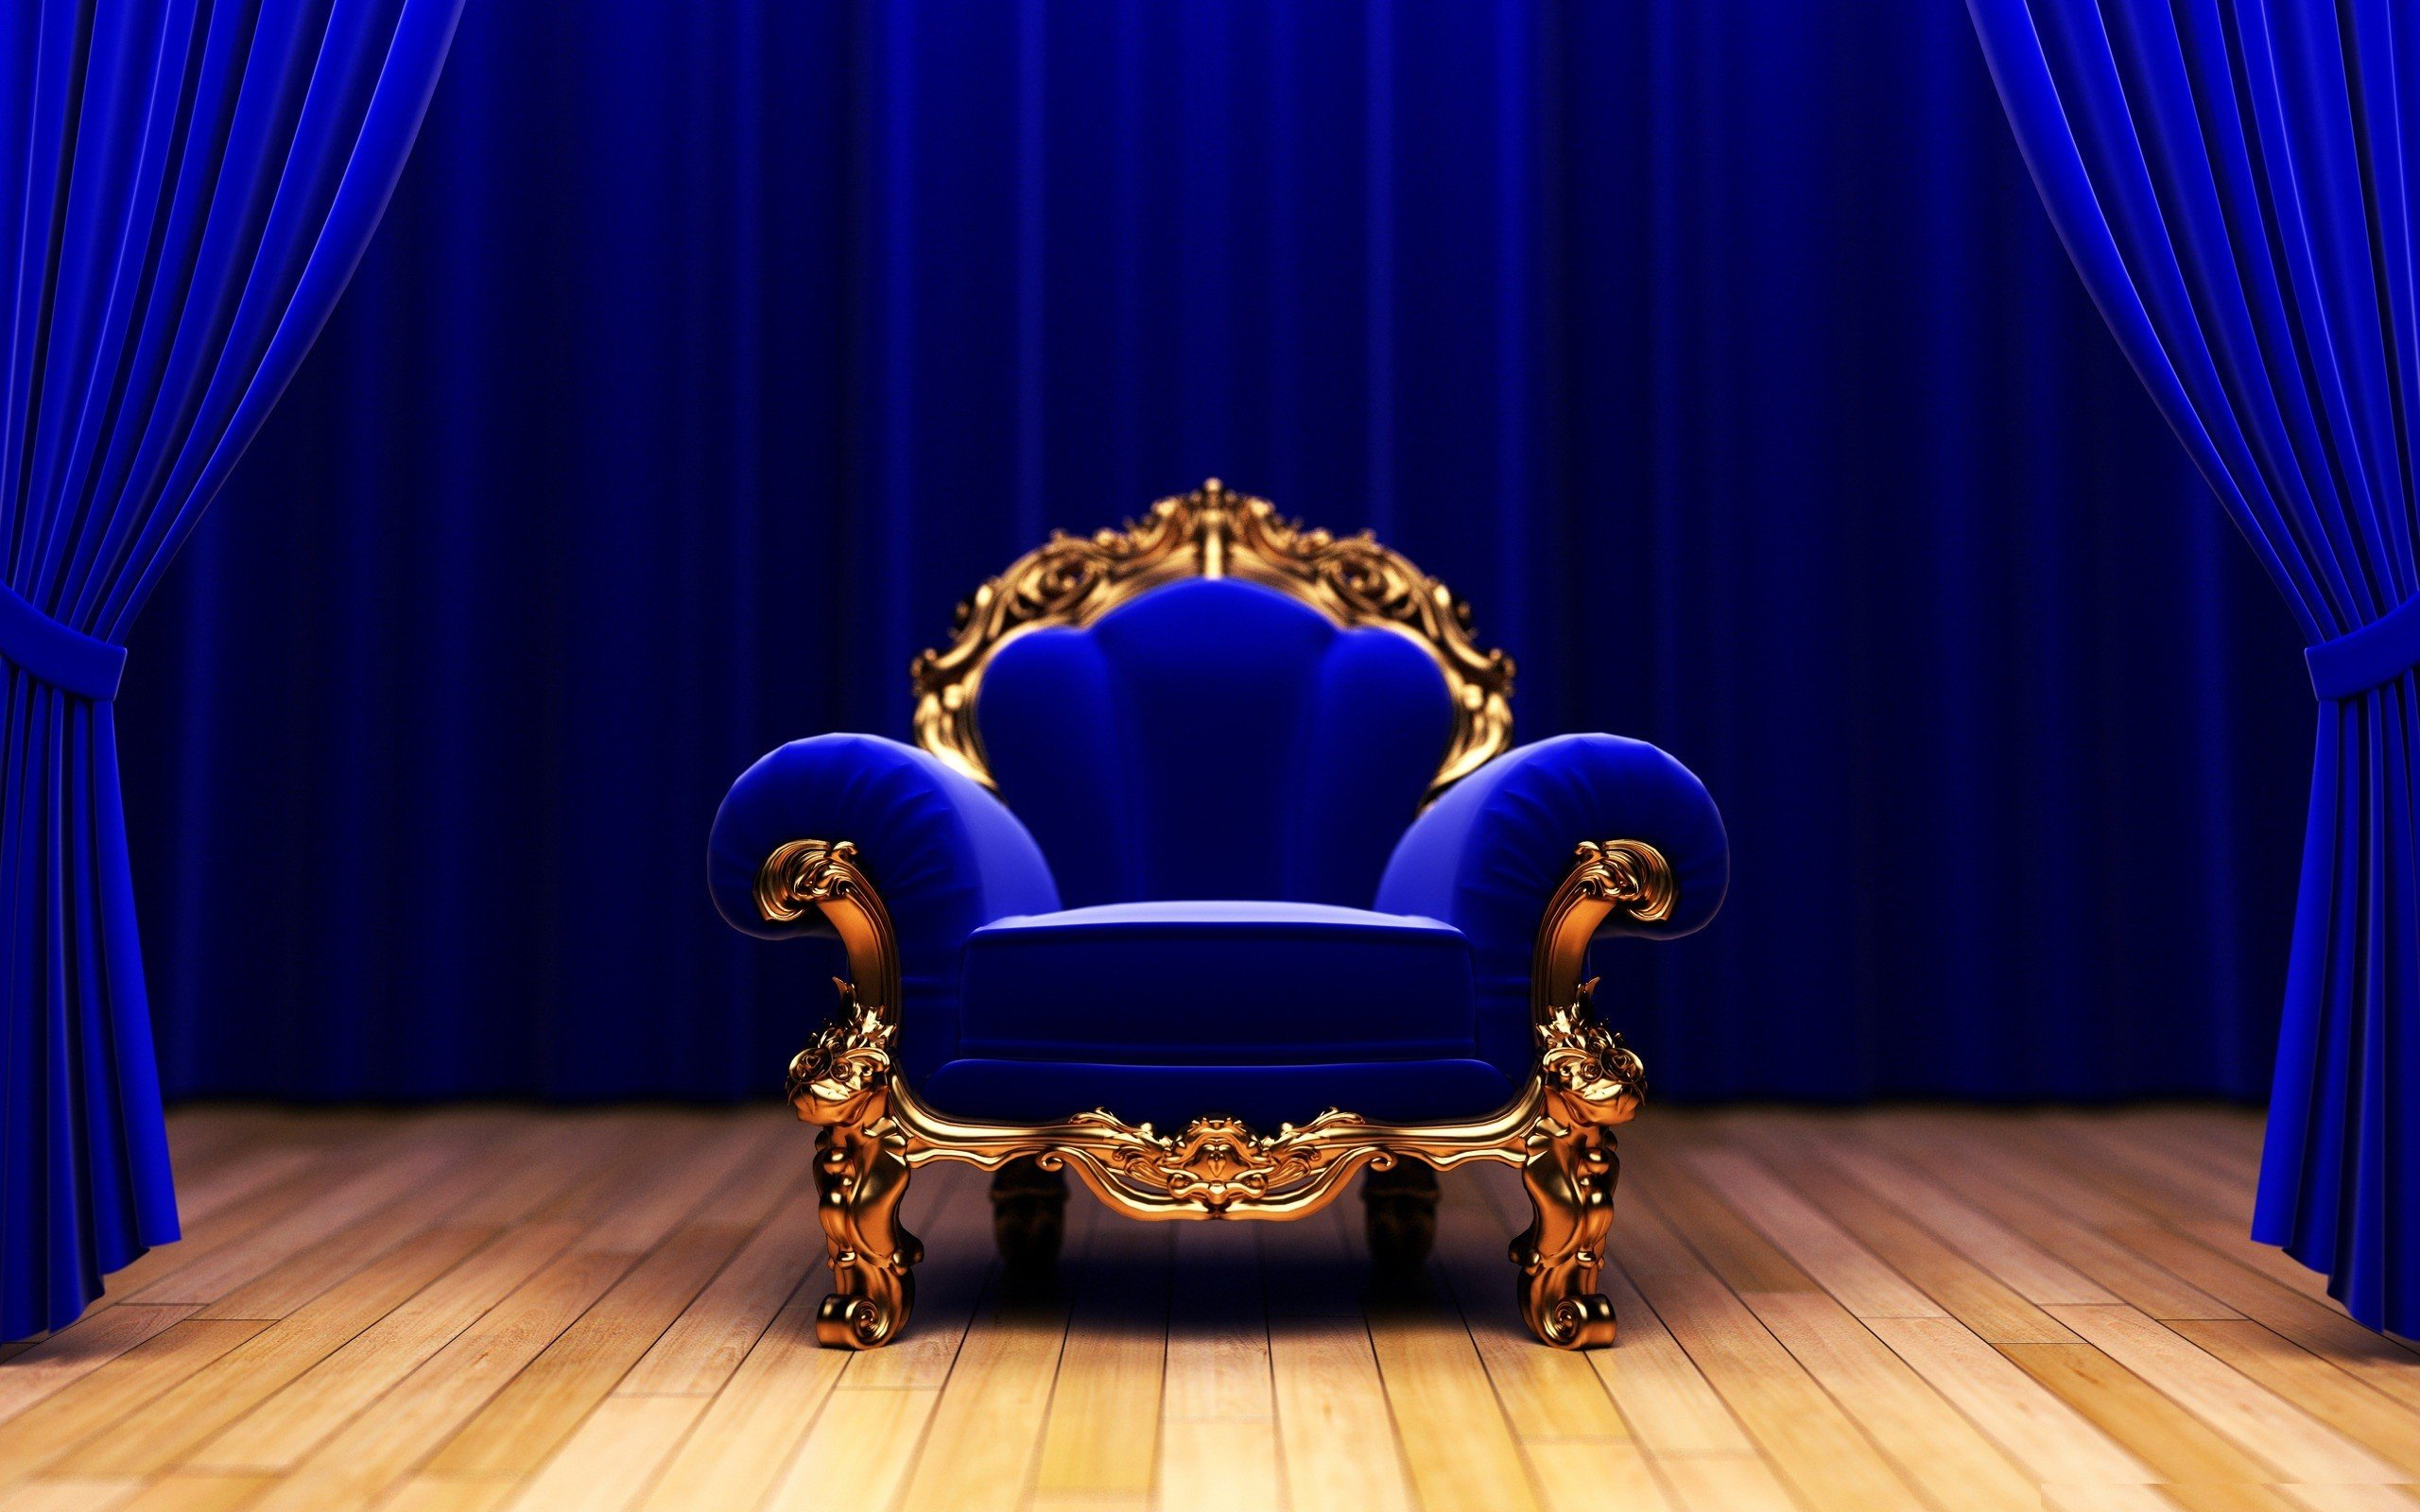 Blue Studio Backgrounds Blue Couch Studio King